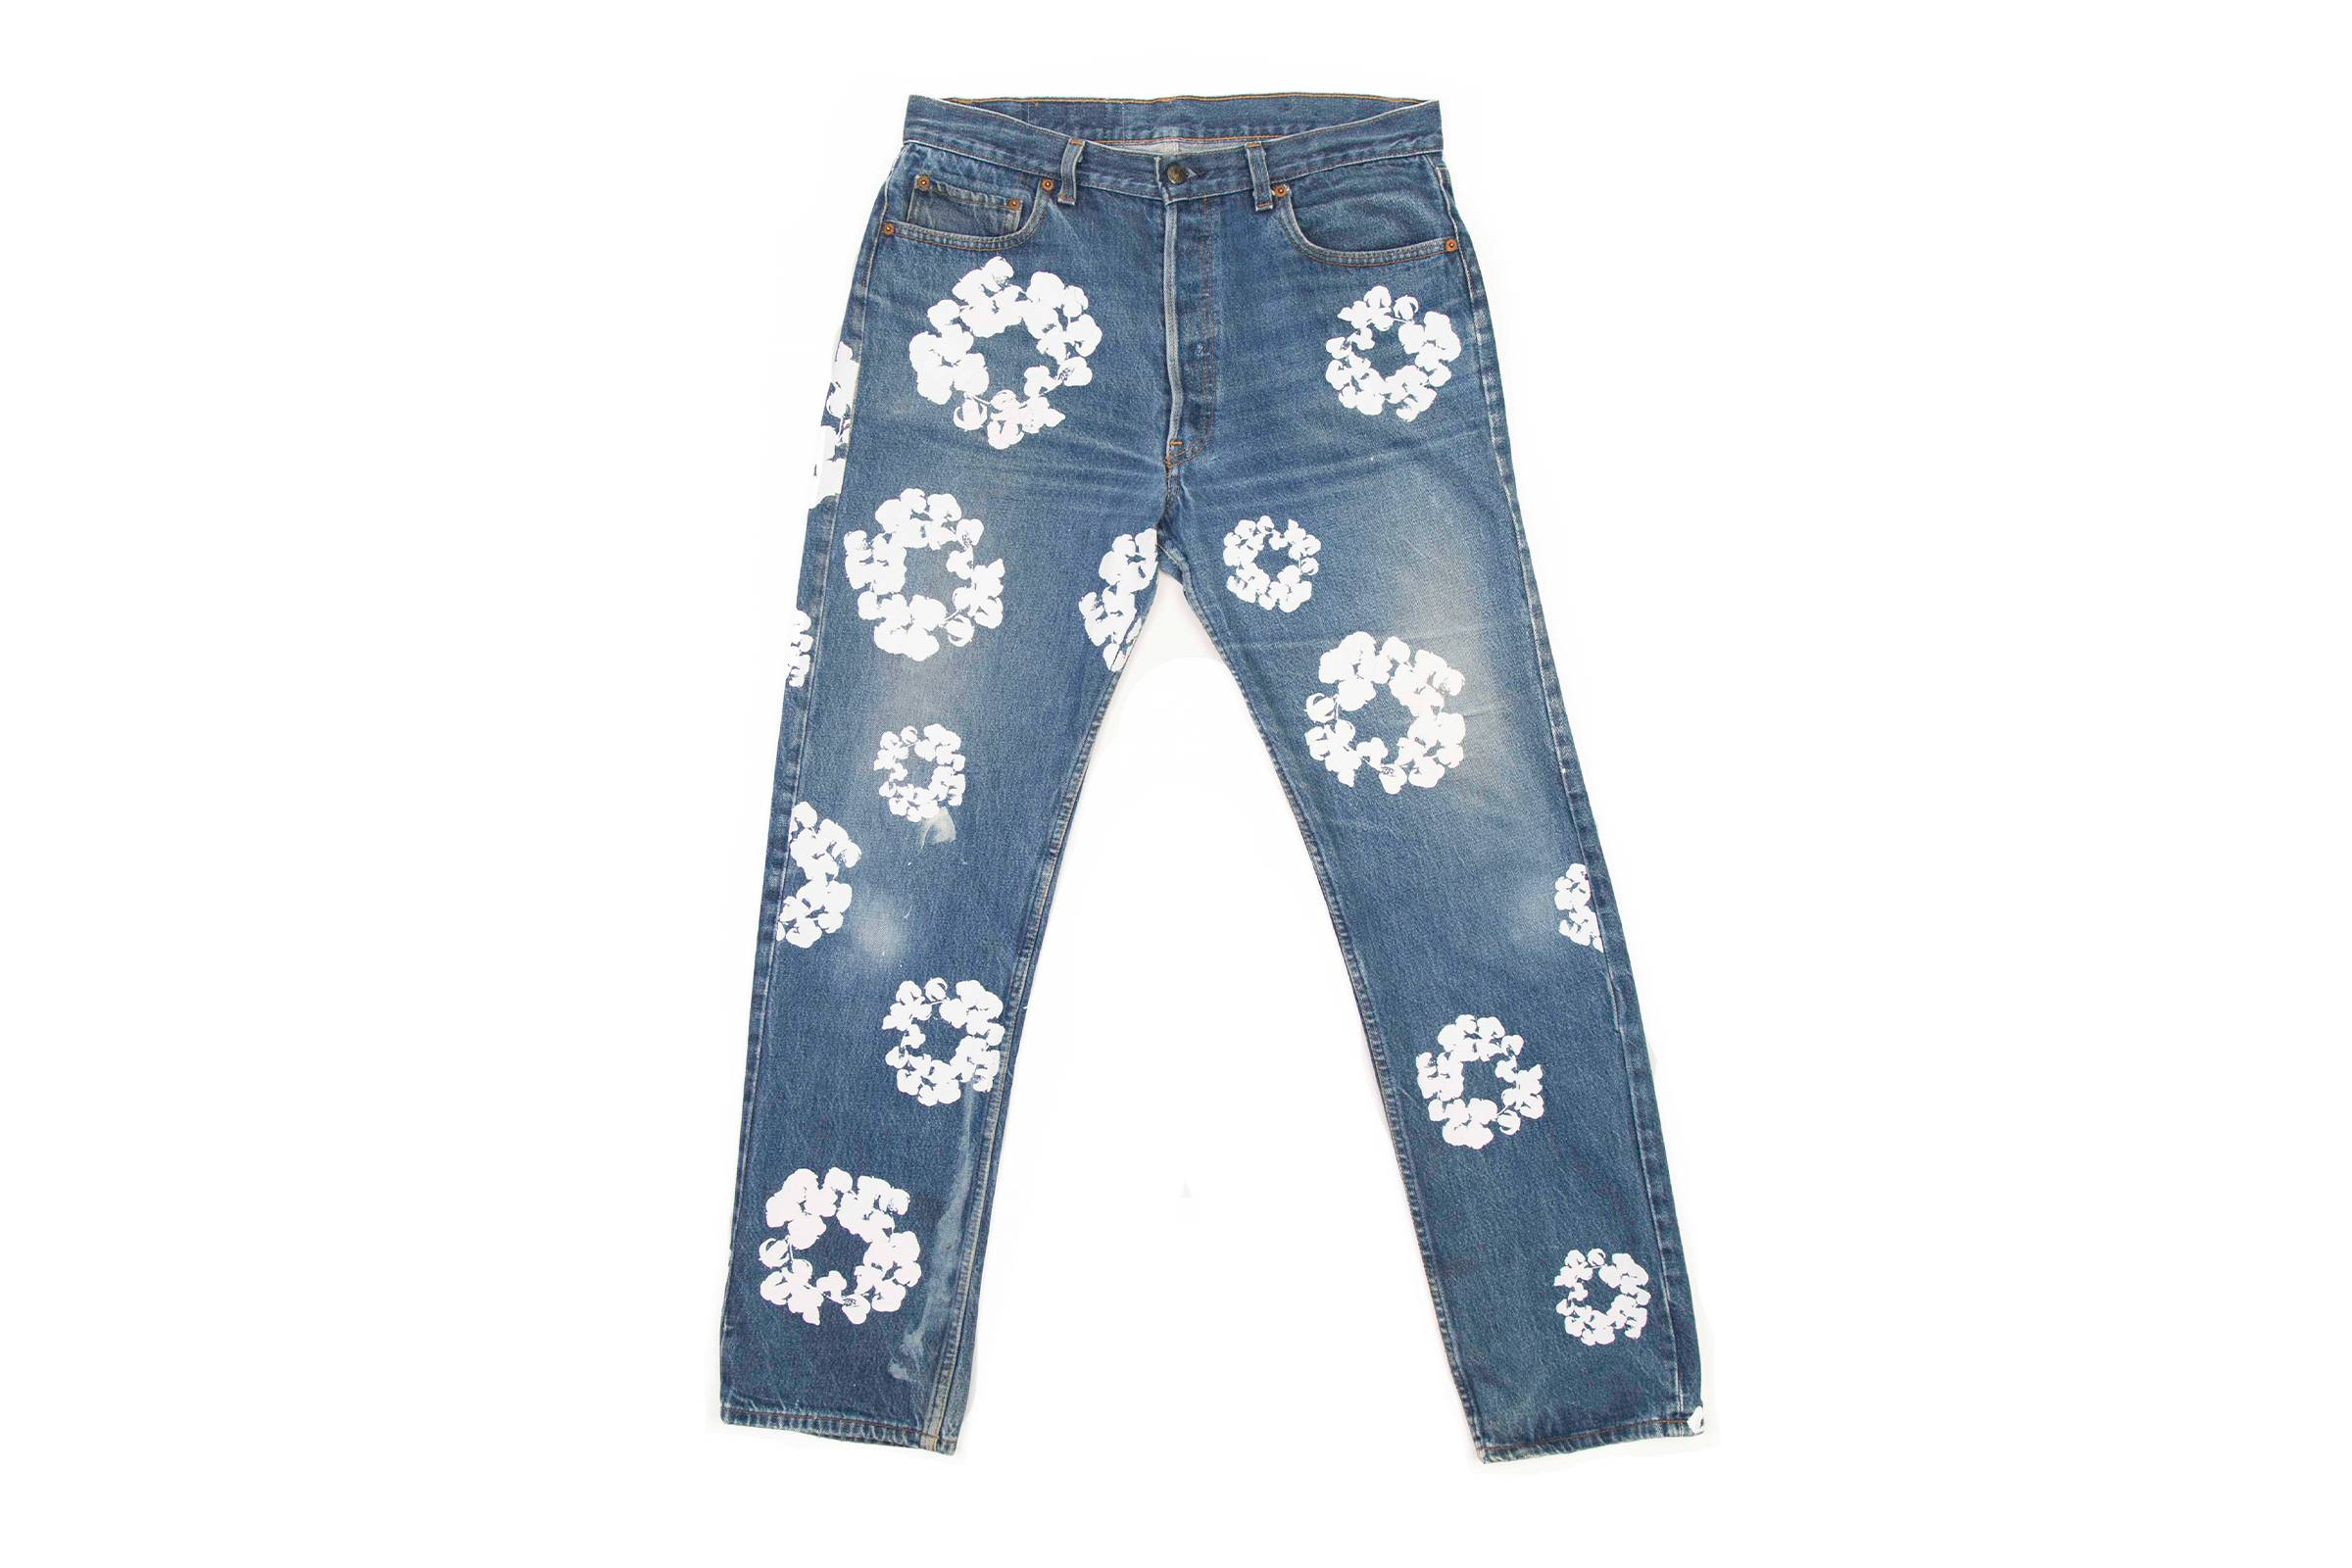 Denim Tears x Levi's Cotton Wreath 501 Denim